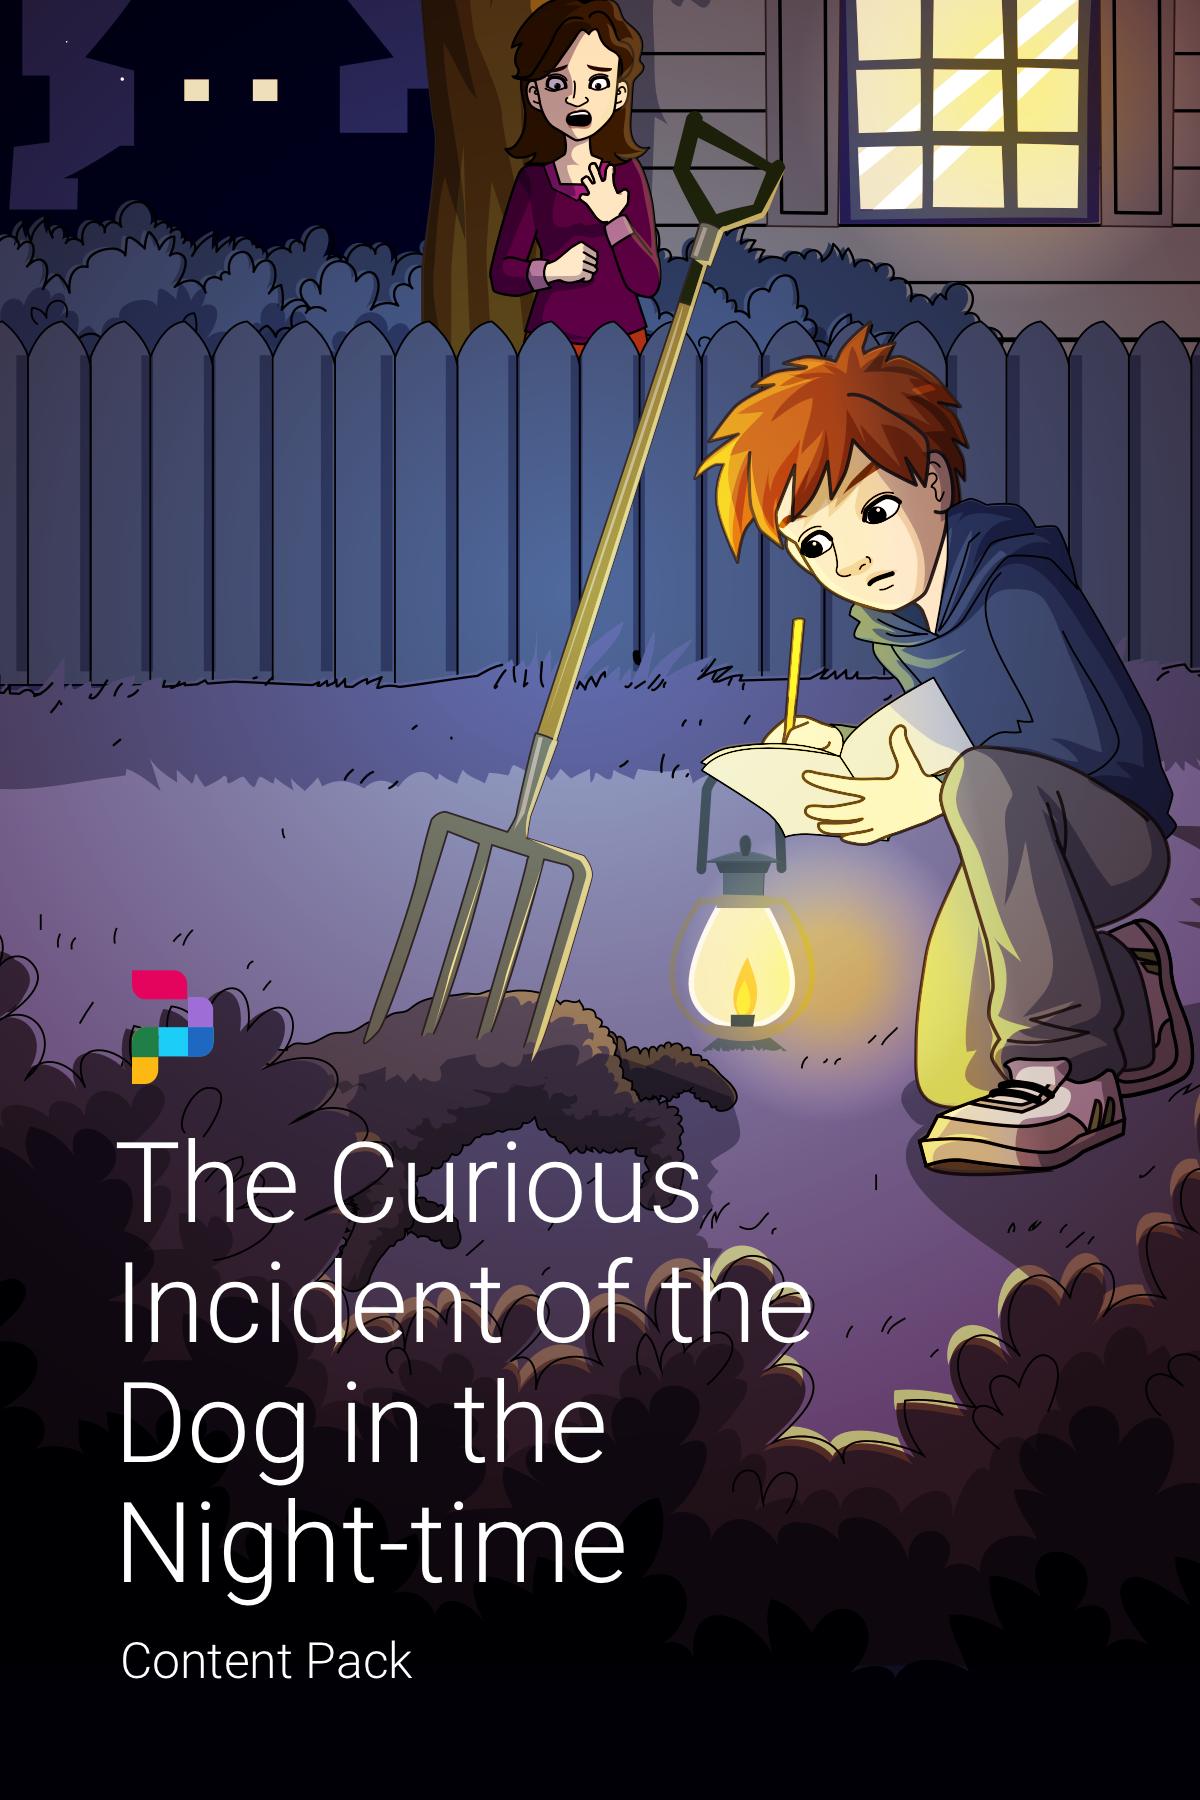 New Content Pack Recreate Key Scenes From The Award Winning Book The Curious Incident Of The Dog In The Night Time Comics Maker Night Time How To Make Comics